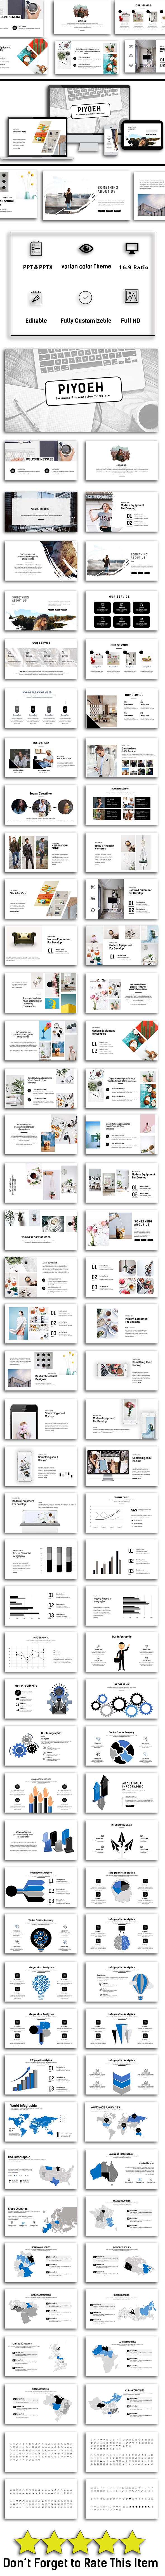 Piyoeh Business Presentation - Business PowerPoint Templates